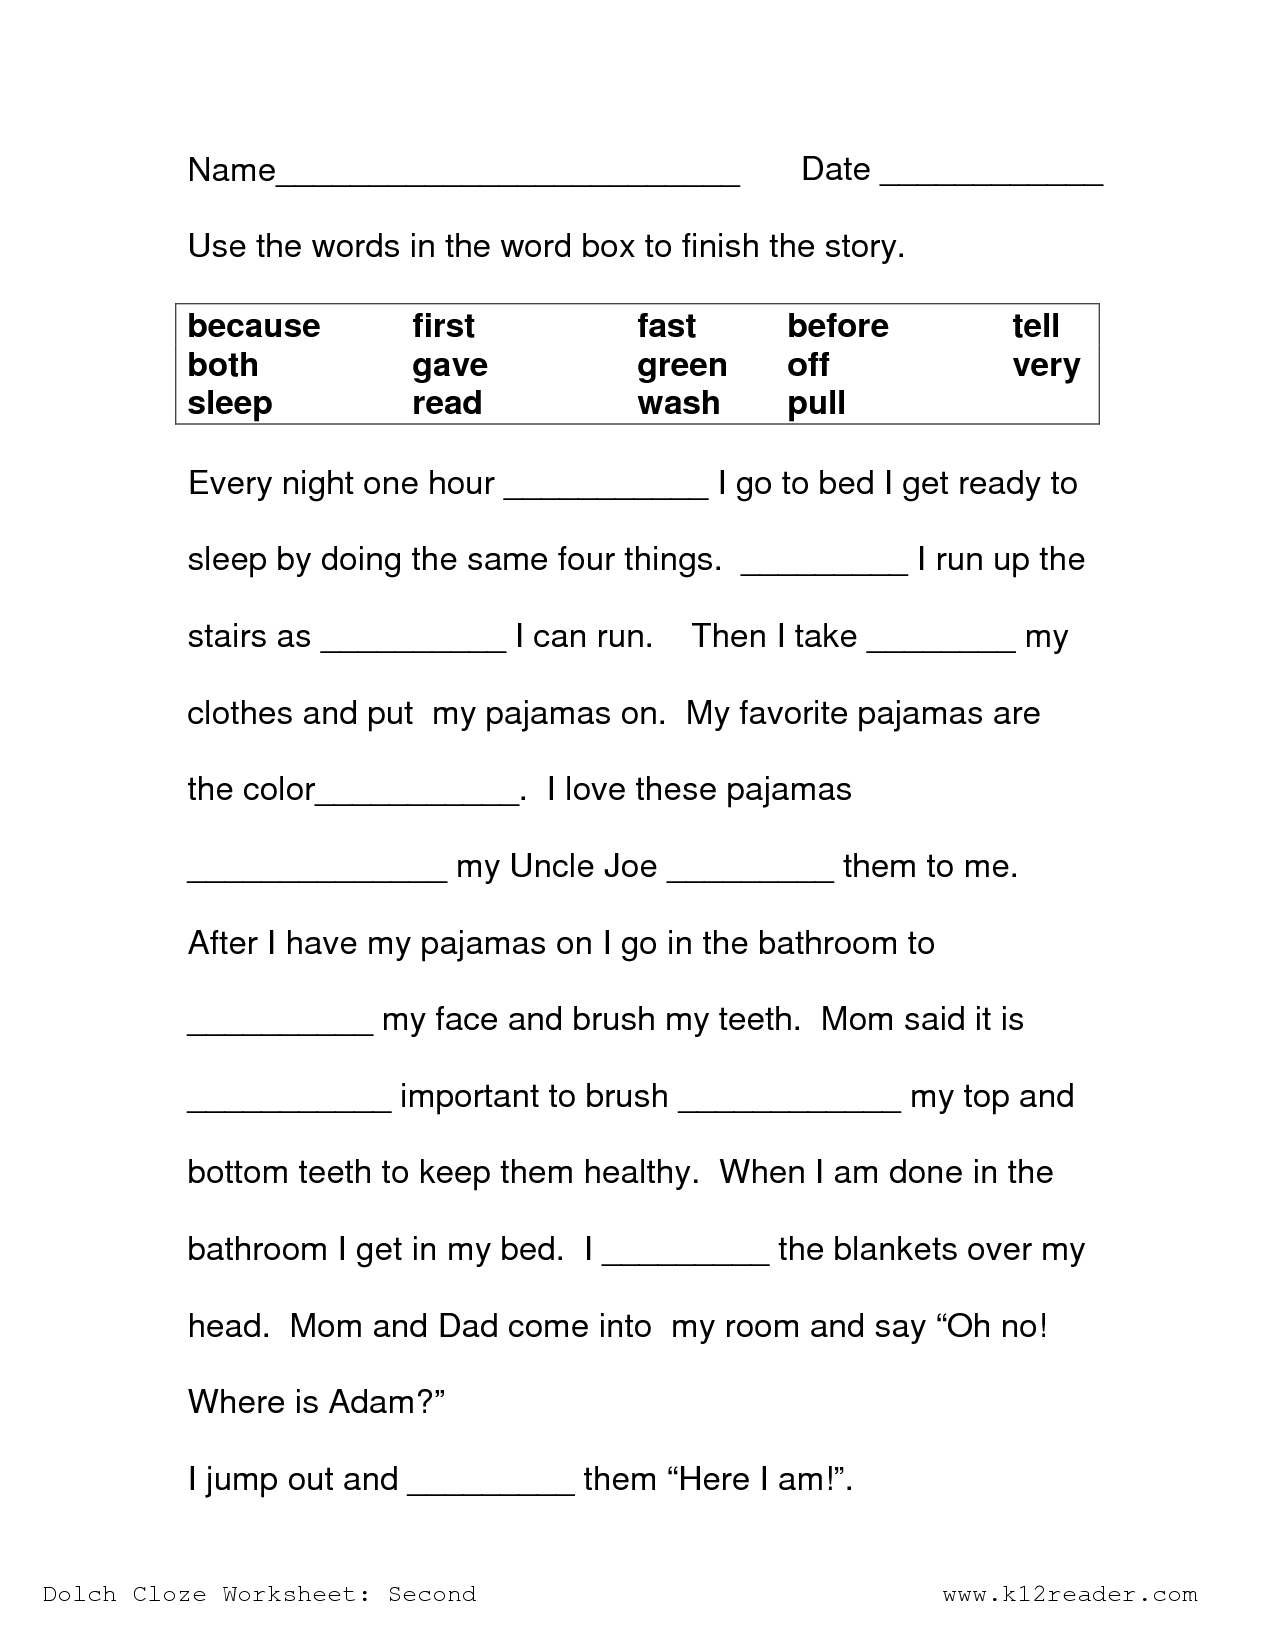 Worksheet Reading Comprehension Worksheets 2nd Grade reading worksheets 2nd grade pichaglobal k5 related